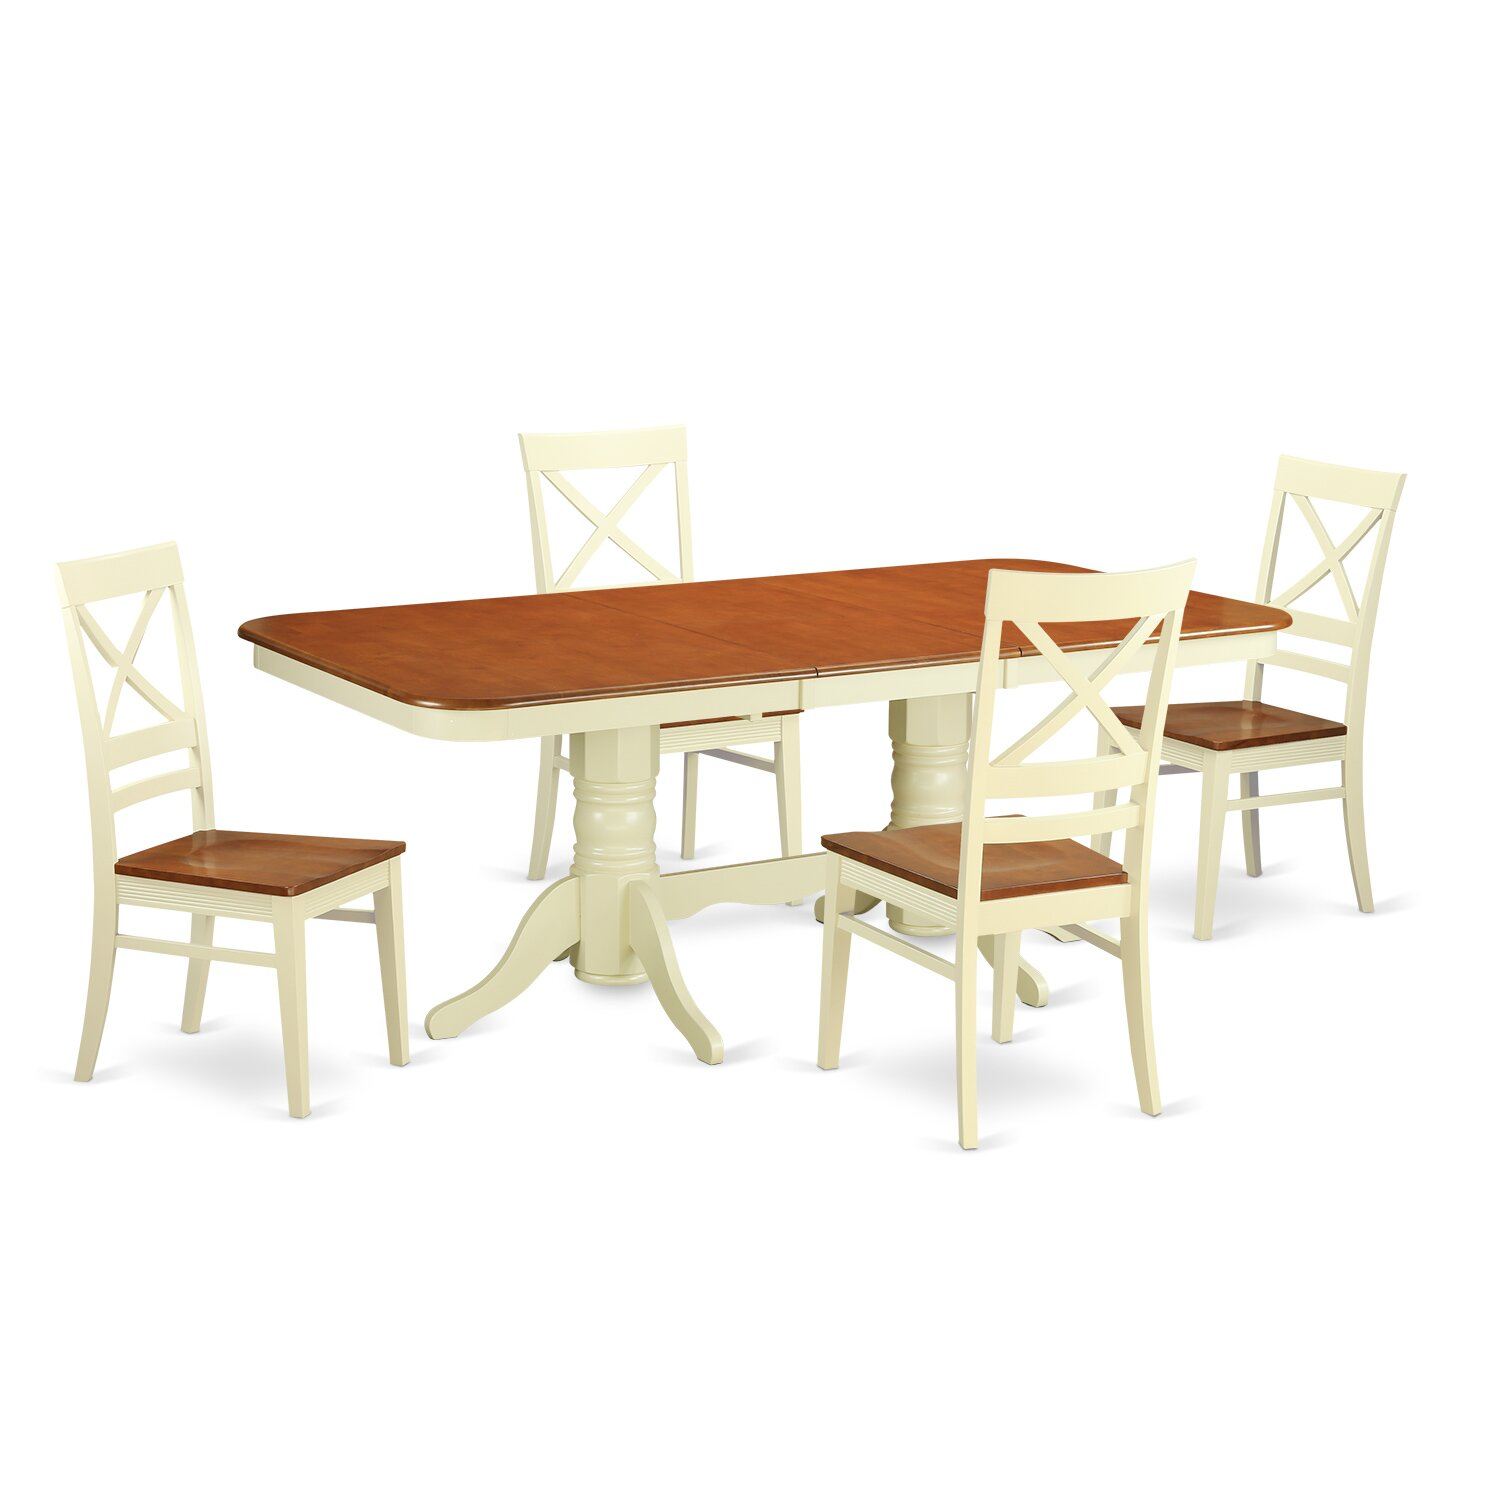 Wooden importers napoleon 5 piece dining set wayfair for 4 piece dining table set